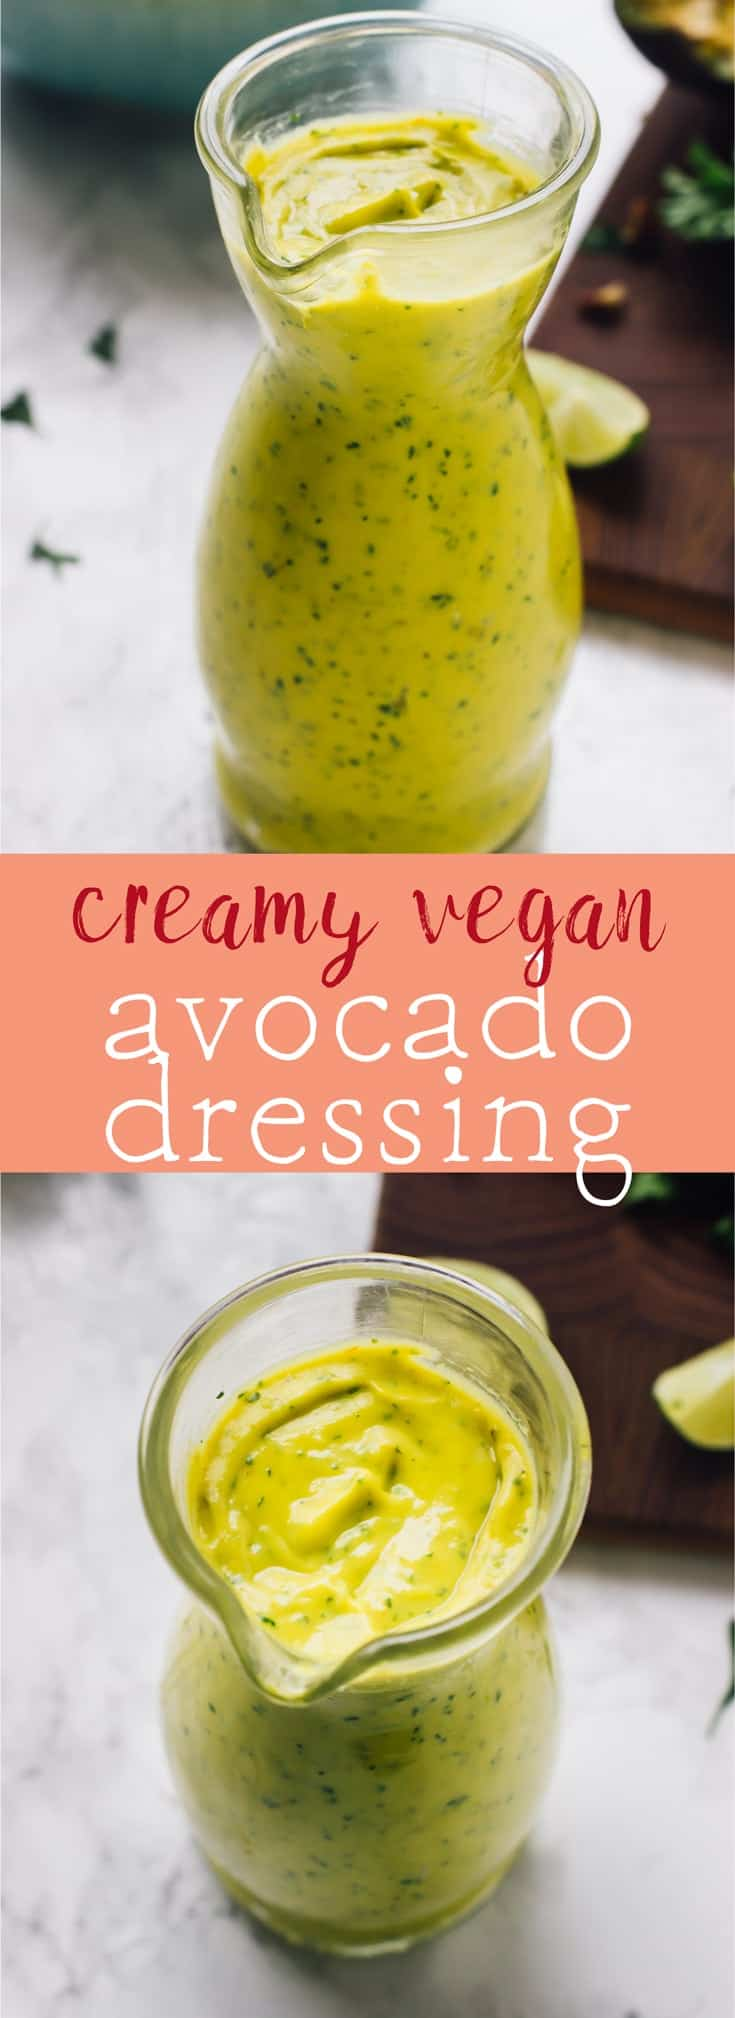 This Creamy Vegan Avocado Dressing takes just 5 minutes to come together is healthy so creamy and delicious and great of any salad! via https://jessicainthekitchen.com